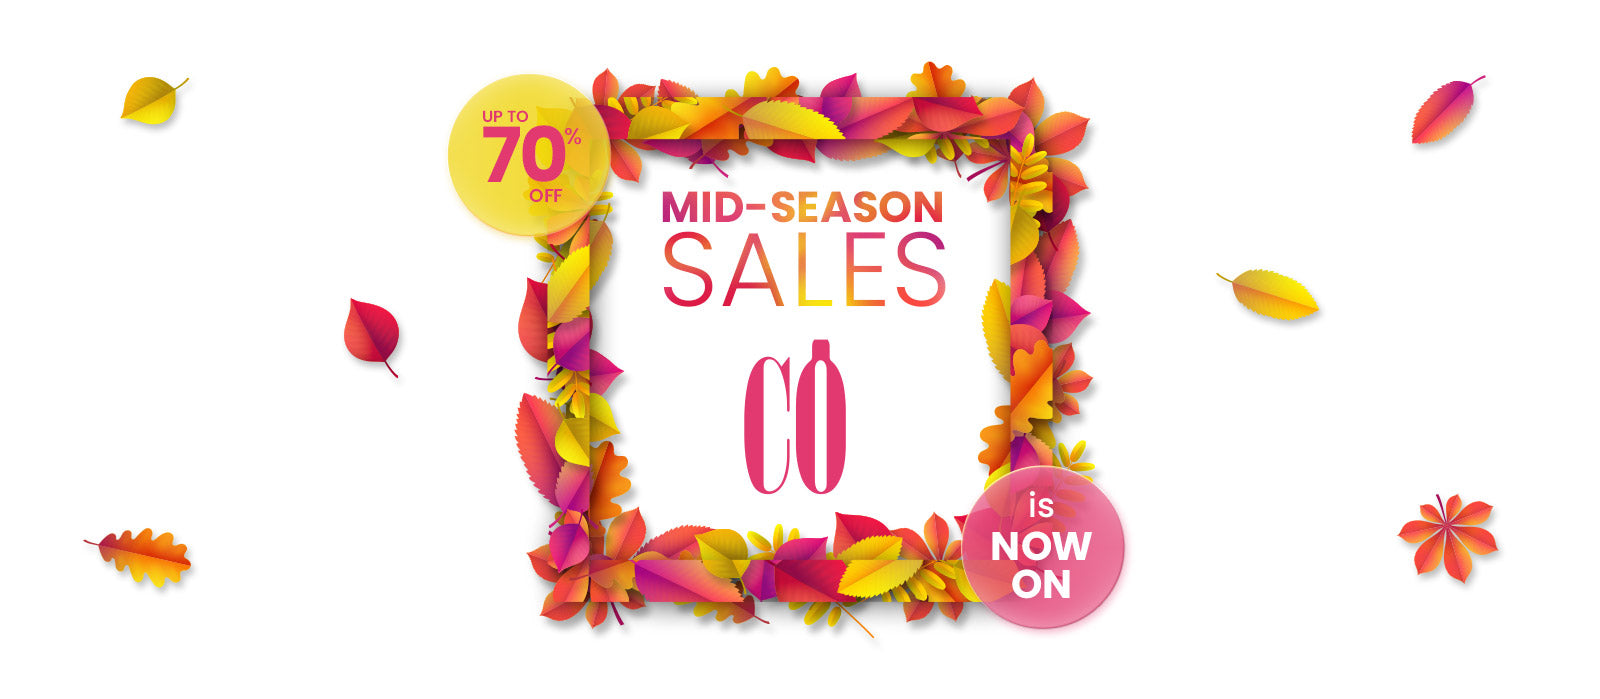 MID-SEASON SALE All At 50% Off